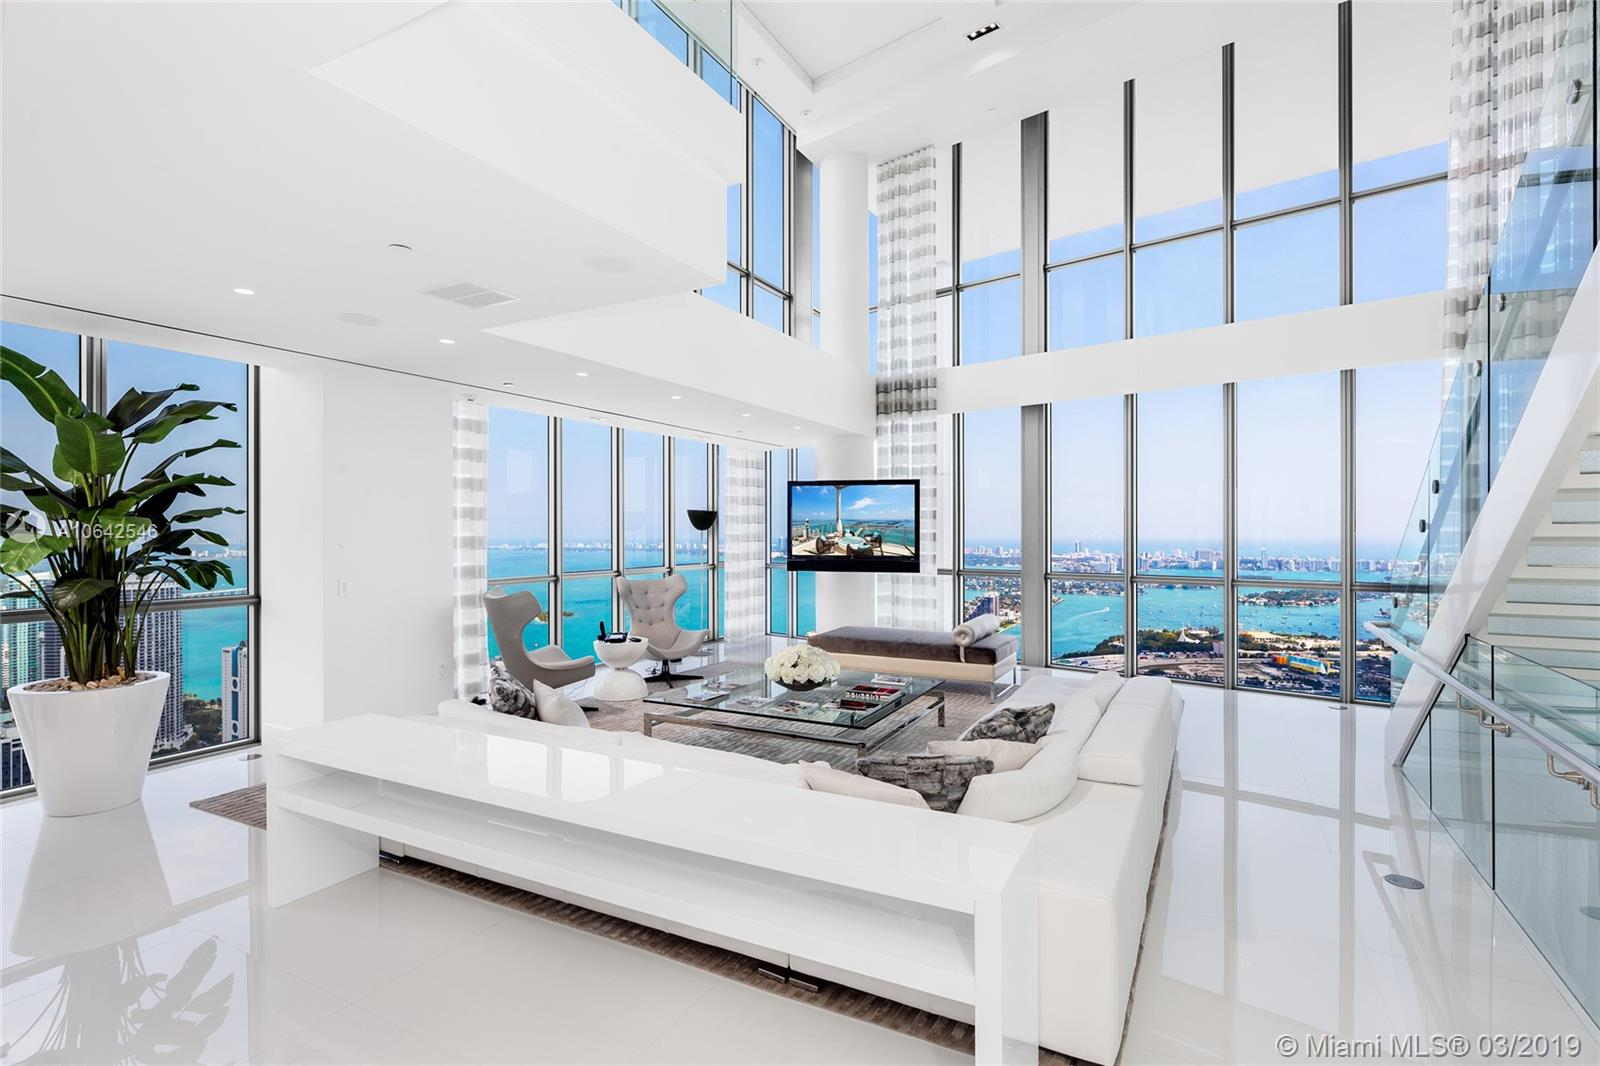 Located at the Marquis in the heart of downtown Miami this 4-Story Penthouse is the pinnacle of luxury living. No expense spared in the 8,000+SF residence. Open flowing living, dining & family areas, illuminated stairs, interior elevator, white glass tile floors, soaring ceilings, approx. 2,000 SF terrace with a private rooftop pool on 67th floor overlooks the city. Breathtaking unobstructed views as far as the eye can see to Biscayne Bay, Atlantic Ocean, Miami Beach & Downtown Miami – must see to believe. The entire 3rd level is the principal suite w/bar, voluminous dual walk-in closet, fireplace & amazing spa bath-all w/stunning views. Centrally located, minutes to sports & cultural venues, entertainment, dining & shopping. 5-star Marquis Amenities complete this offering.